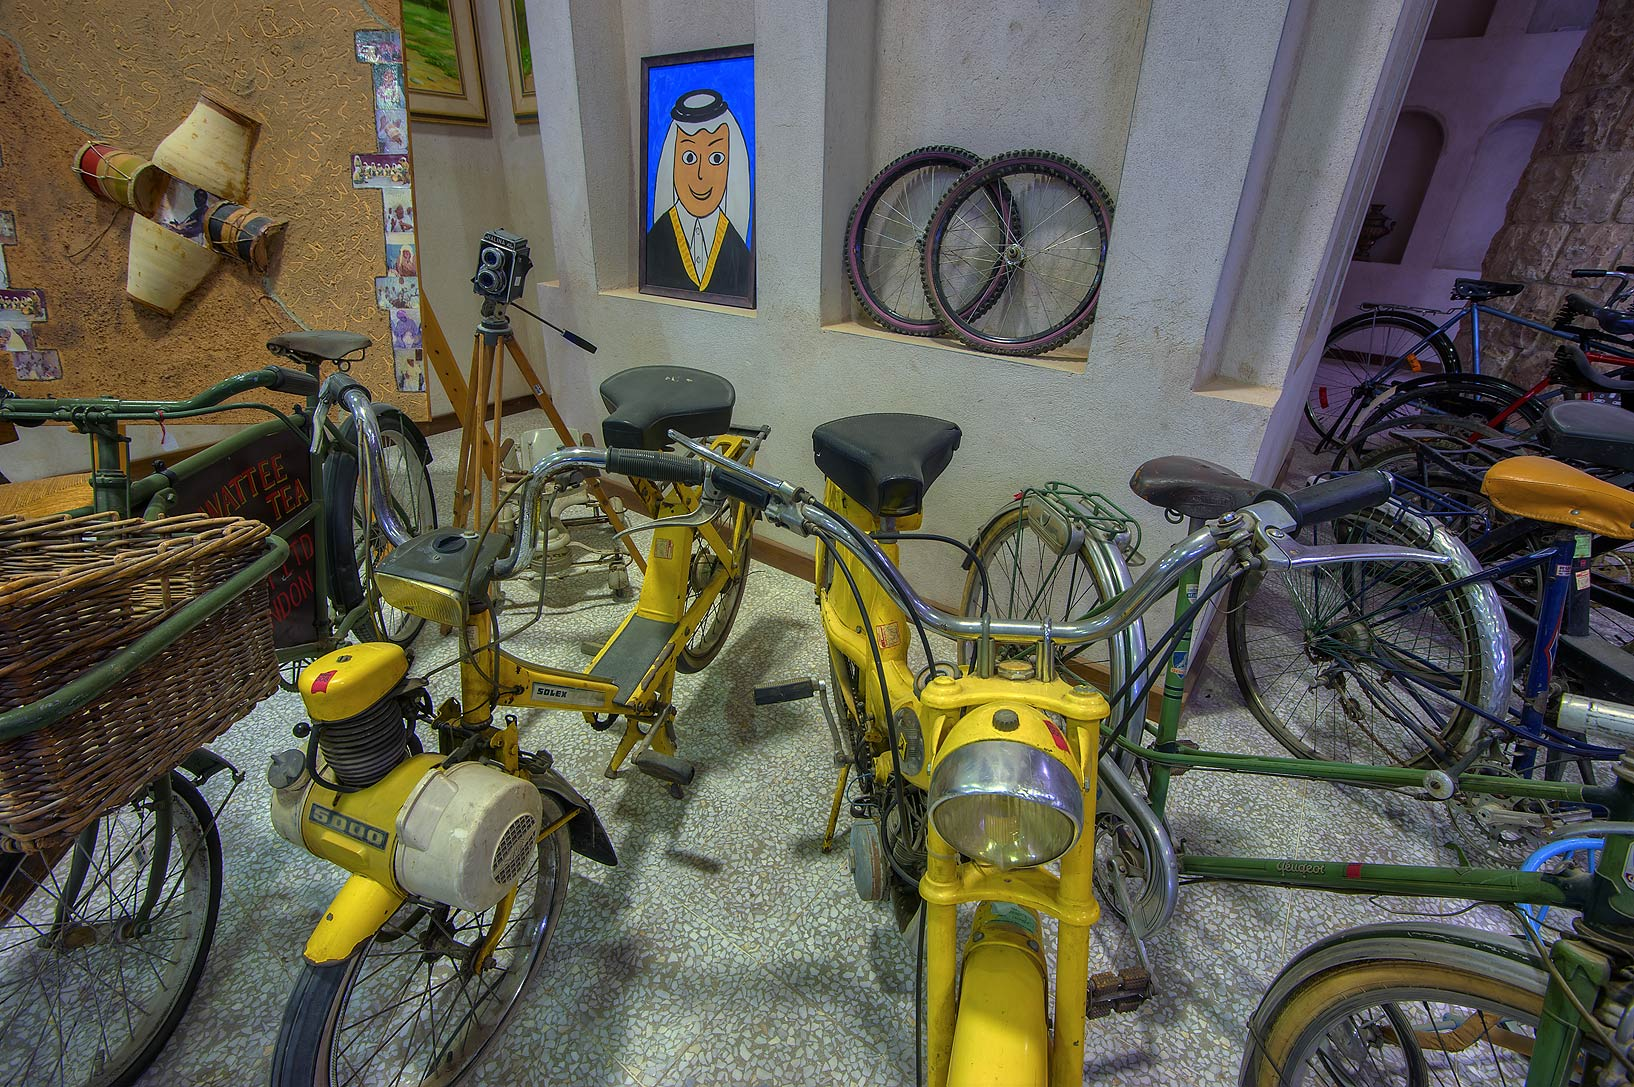 Children's bicycles in Sheikh Faisal Bin Qassim...Museum near Al-Shahaniya. Doha, Qatar